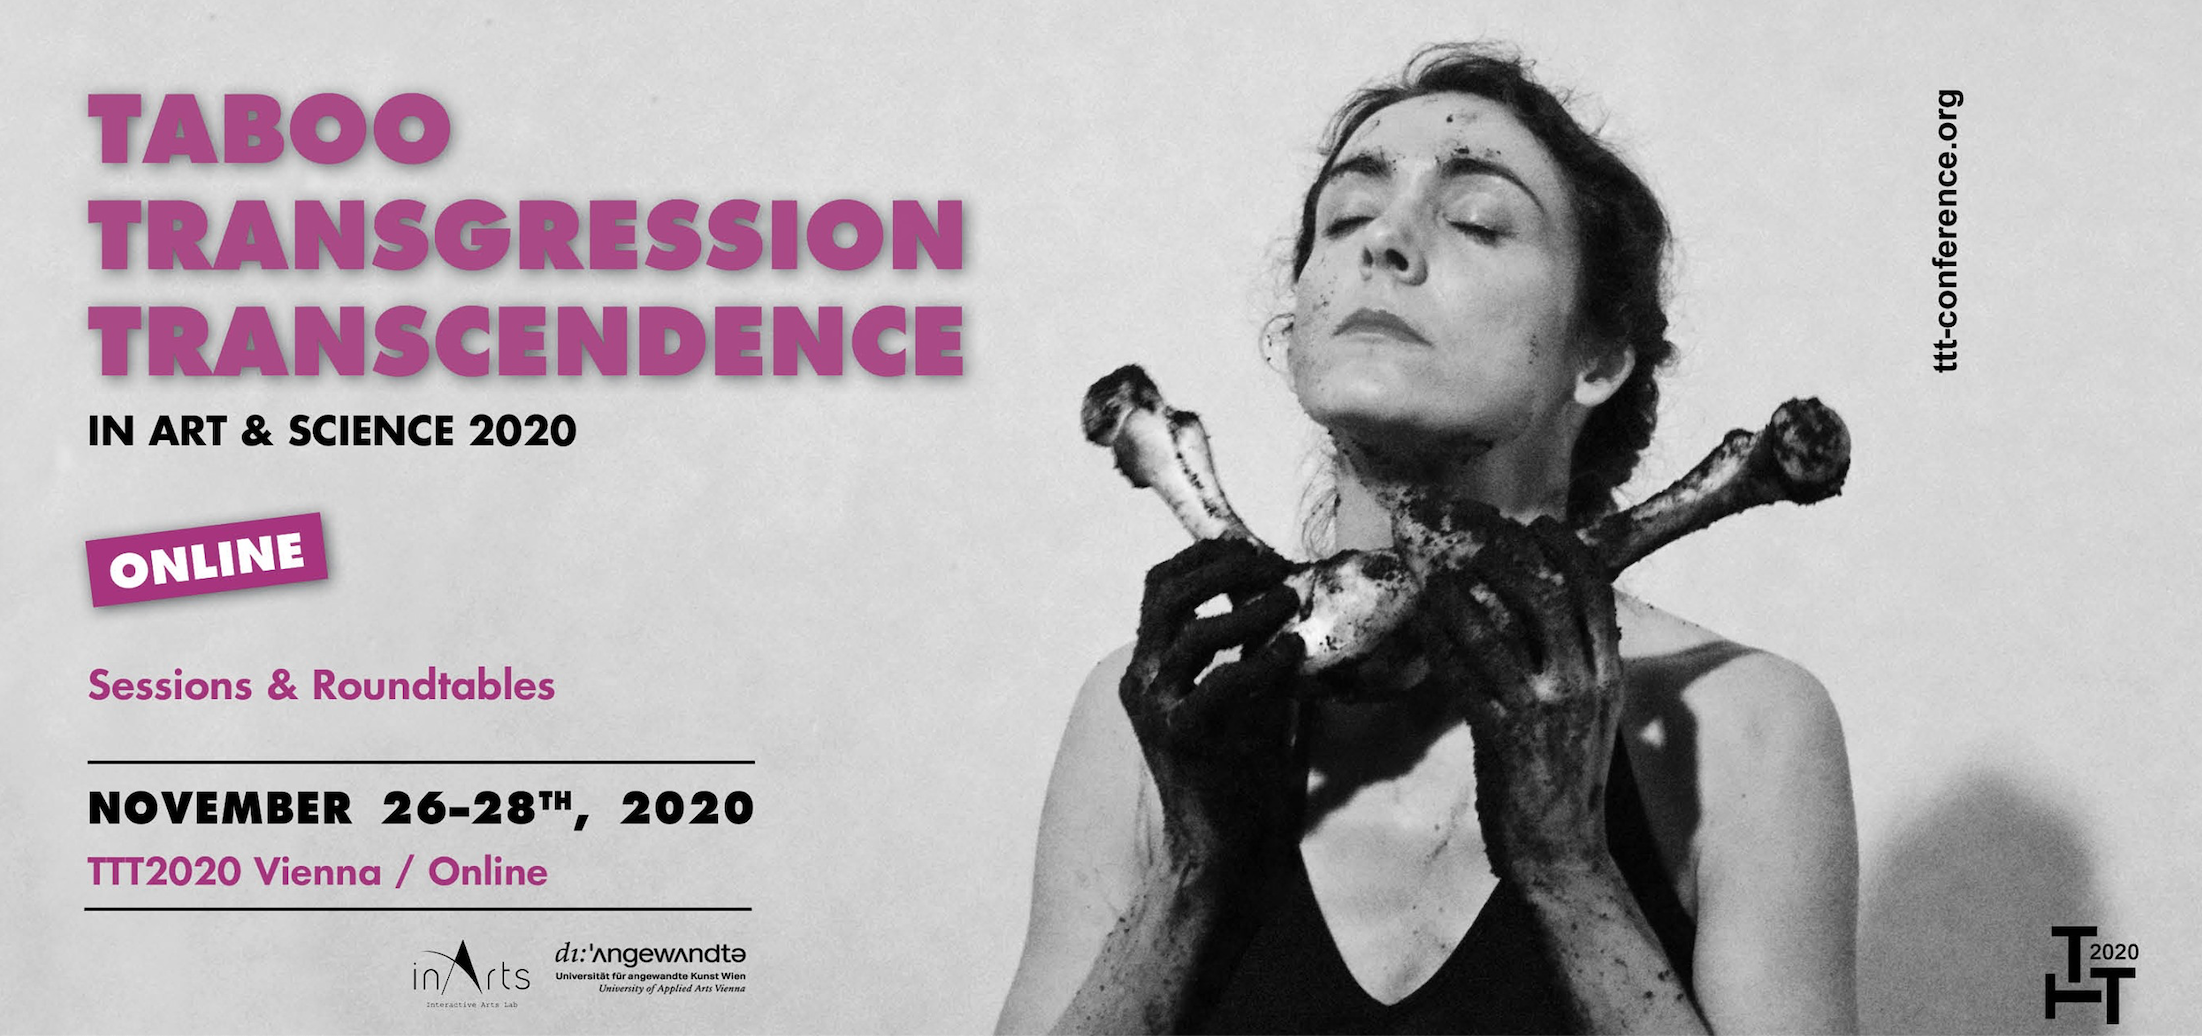 Coming up next: The 4th international conference Taboo – Transgression – Transcendence in Art & Science in Vienna goes online